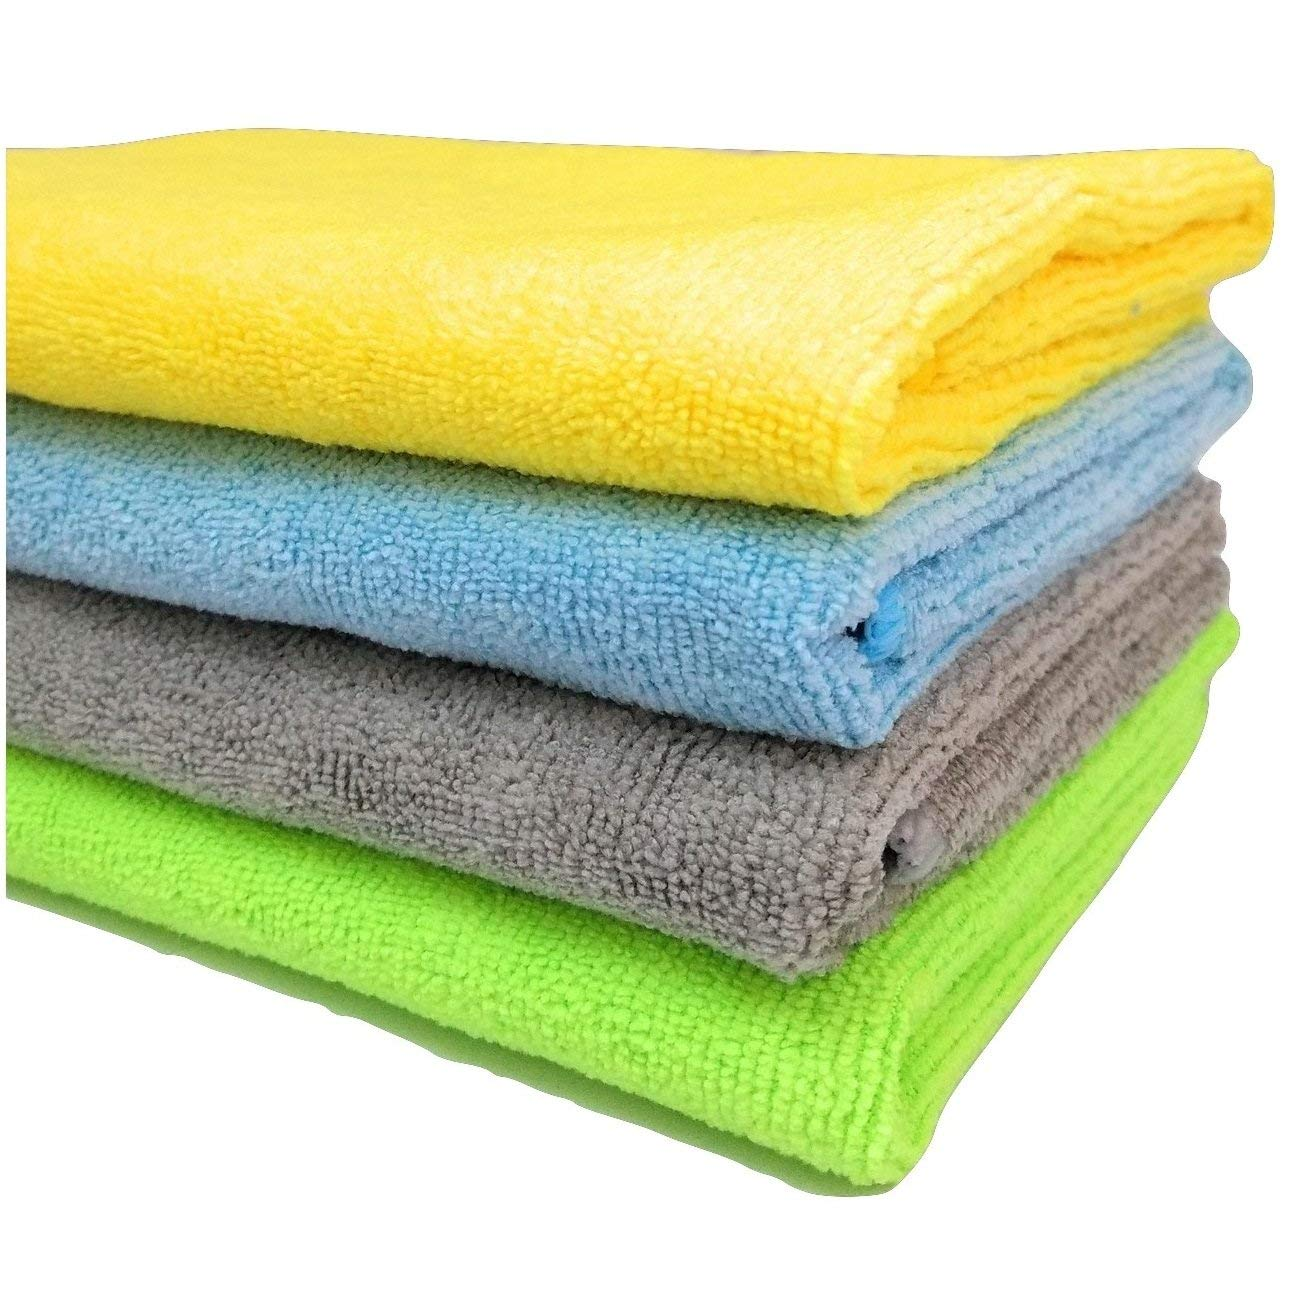 SOBBY Microfibre Cleaning Cloth - 40 cm x 40 cm - 340 gsm, (Multicolor, Pack of 4) product image